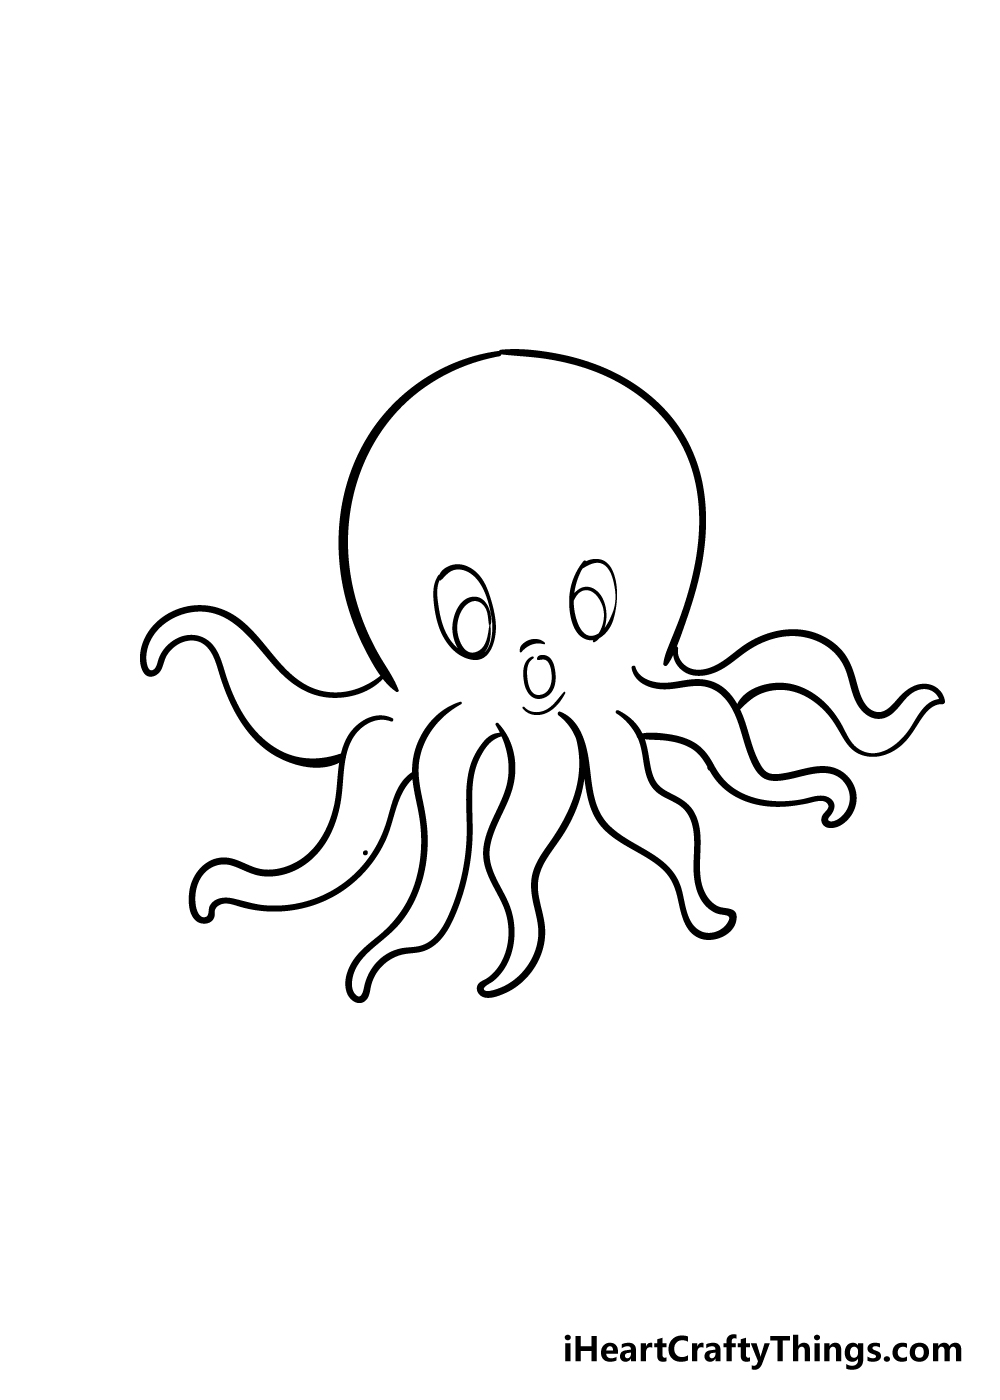 octopus drawing step 6